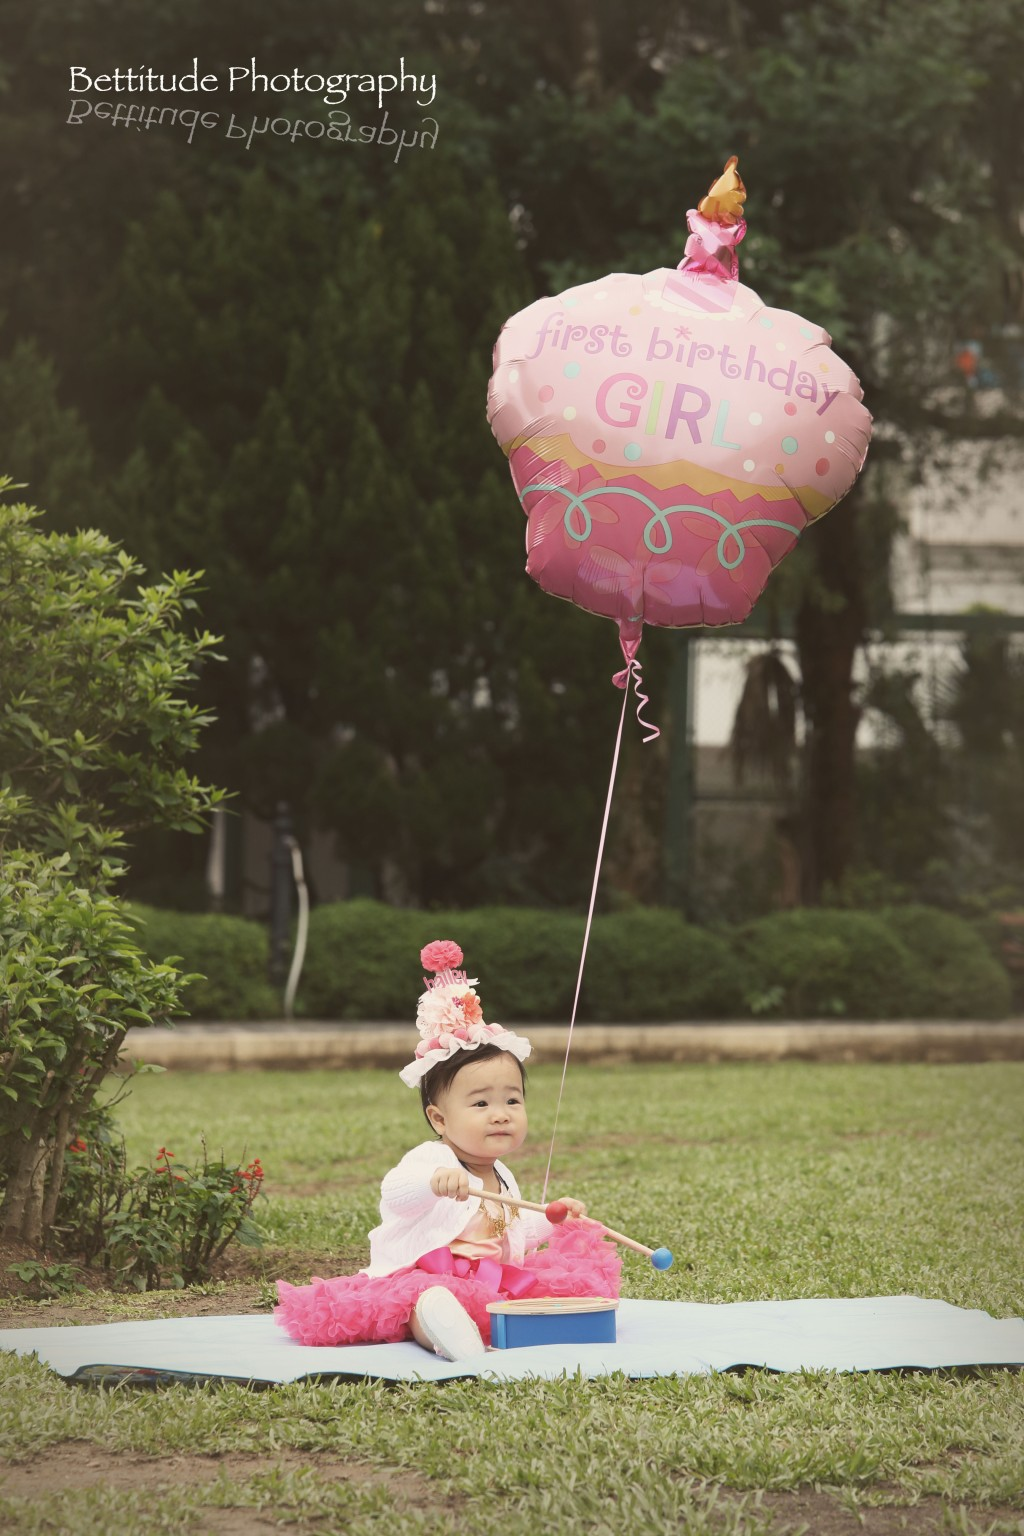 bettitude-photography-outdoor-baby-portraits-hong-kong_045pi